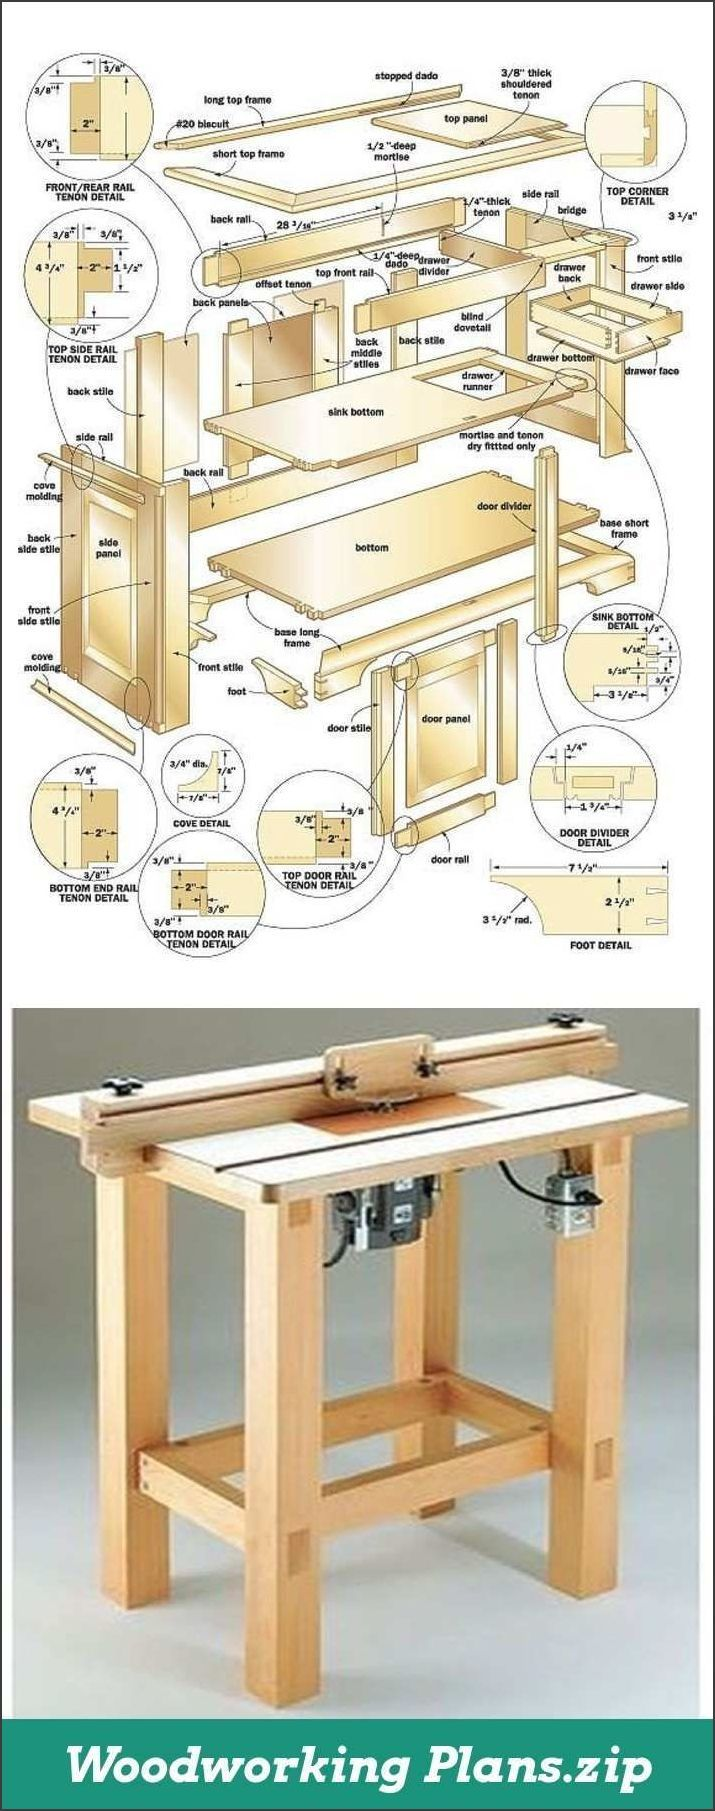 Woodworking Projects For Beginners Six Easy Project Ideas Woodworking Plans Beginner Learn Woodworking Beginner Woodworking Projects